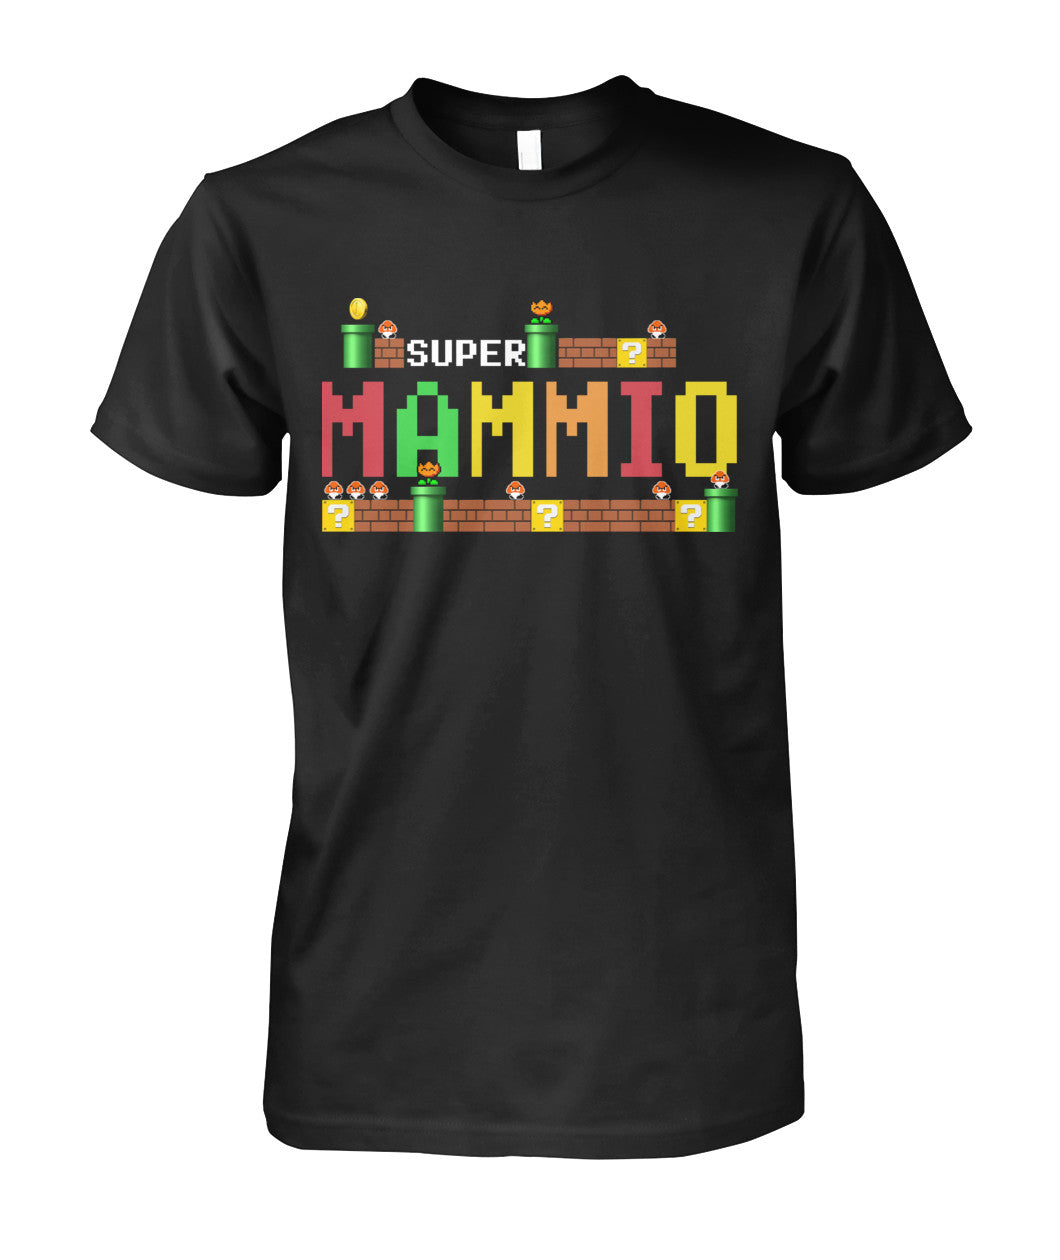 Super Mammio shirt